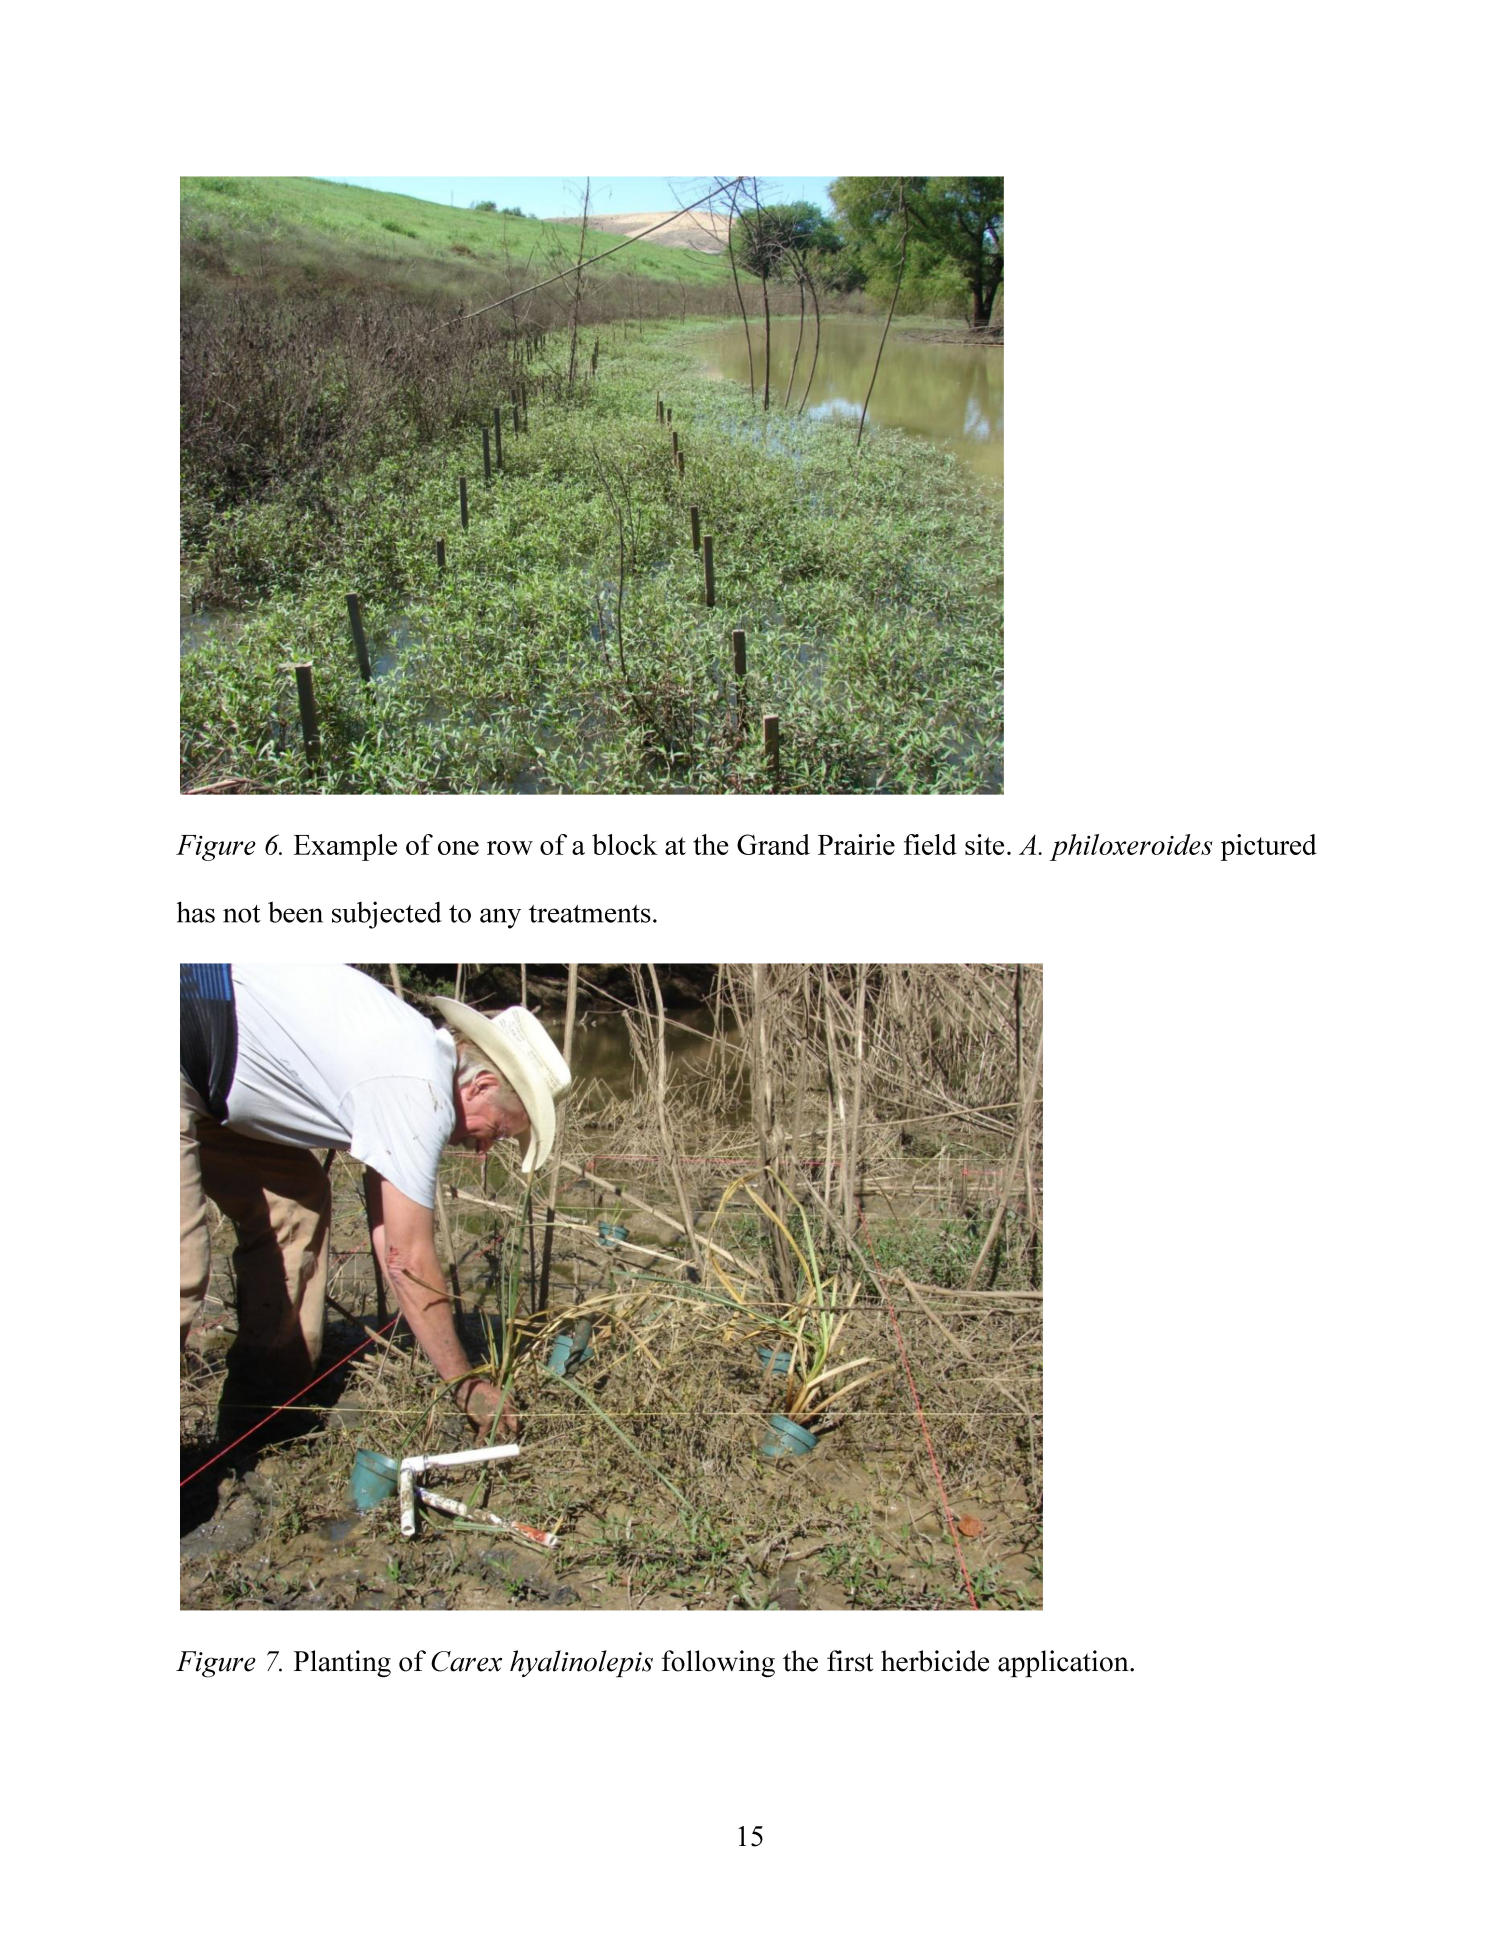 Integrating Selective Herbicide and Native Plant Restoration to Control Alternanthera philoxeroides (Alligator Weed)                                                                                                      15